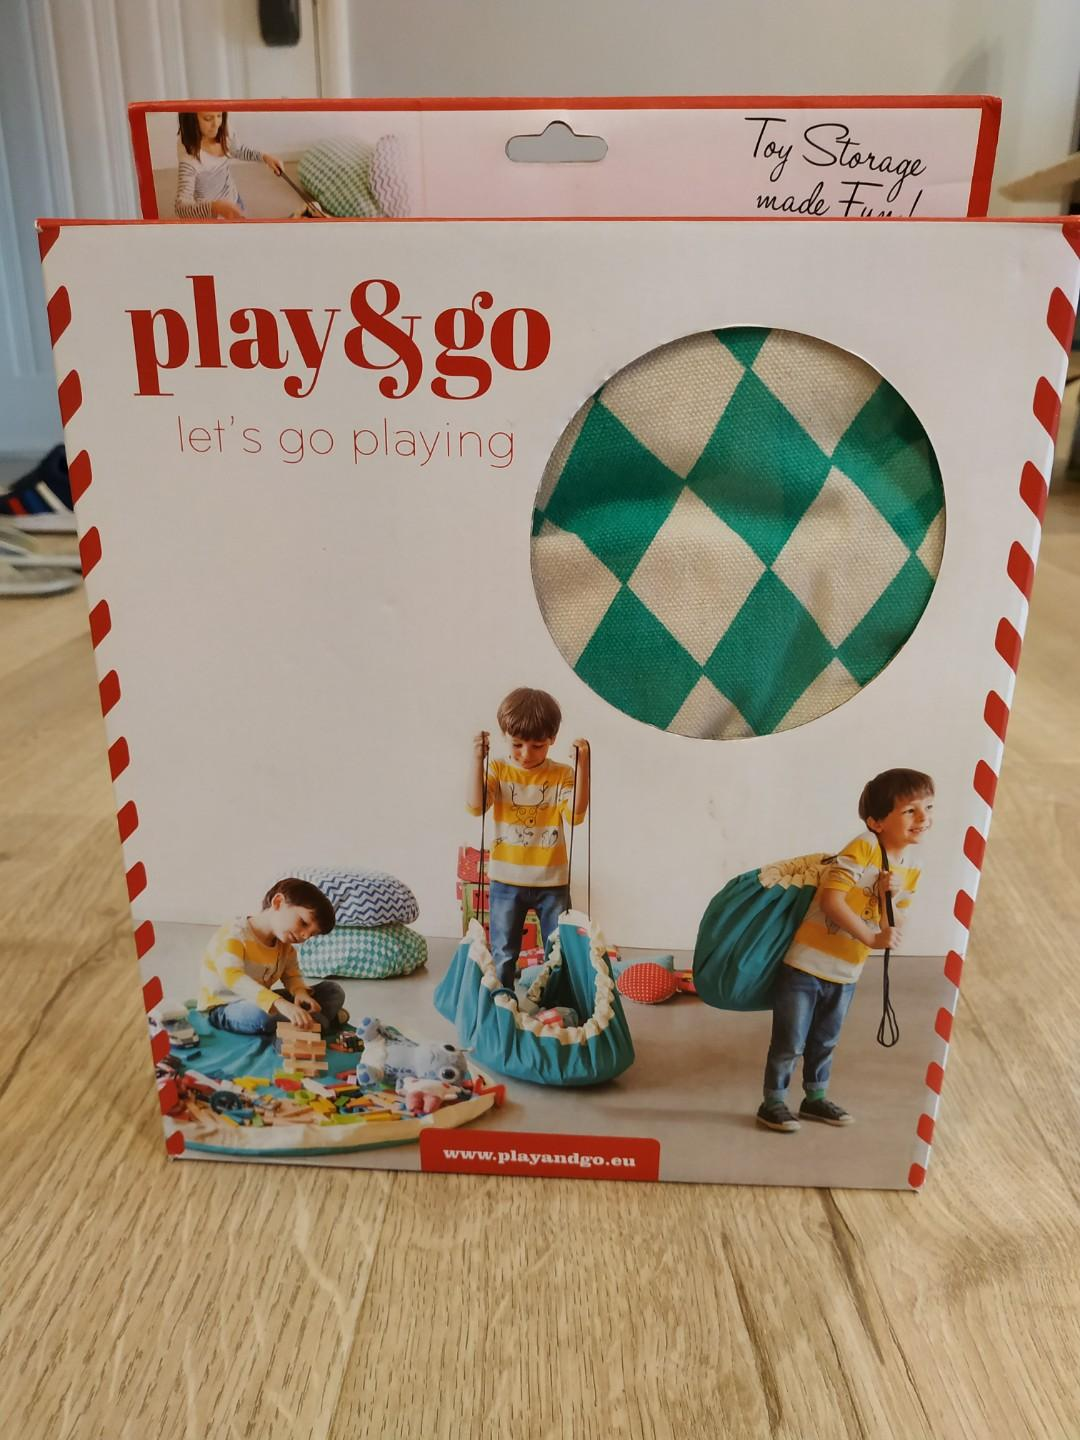 Play and go 玩具袋